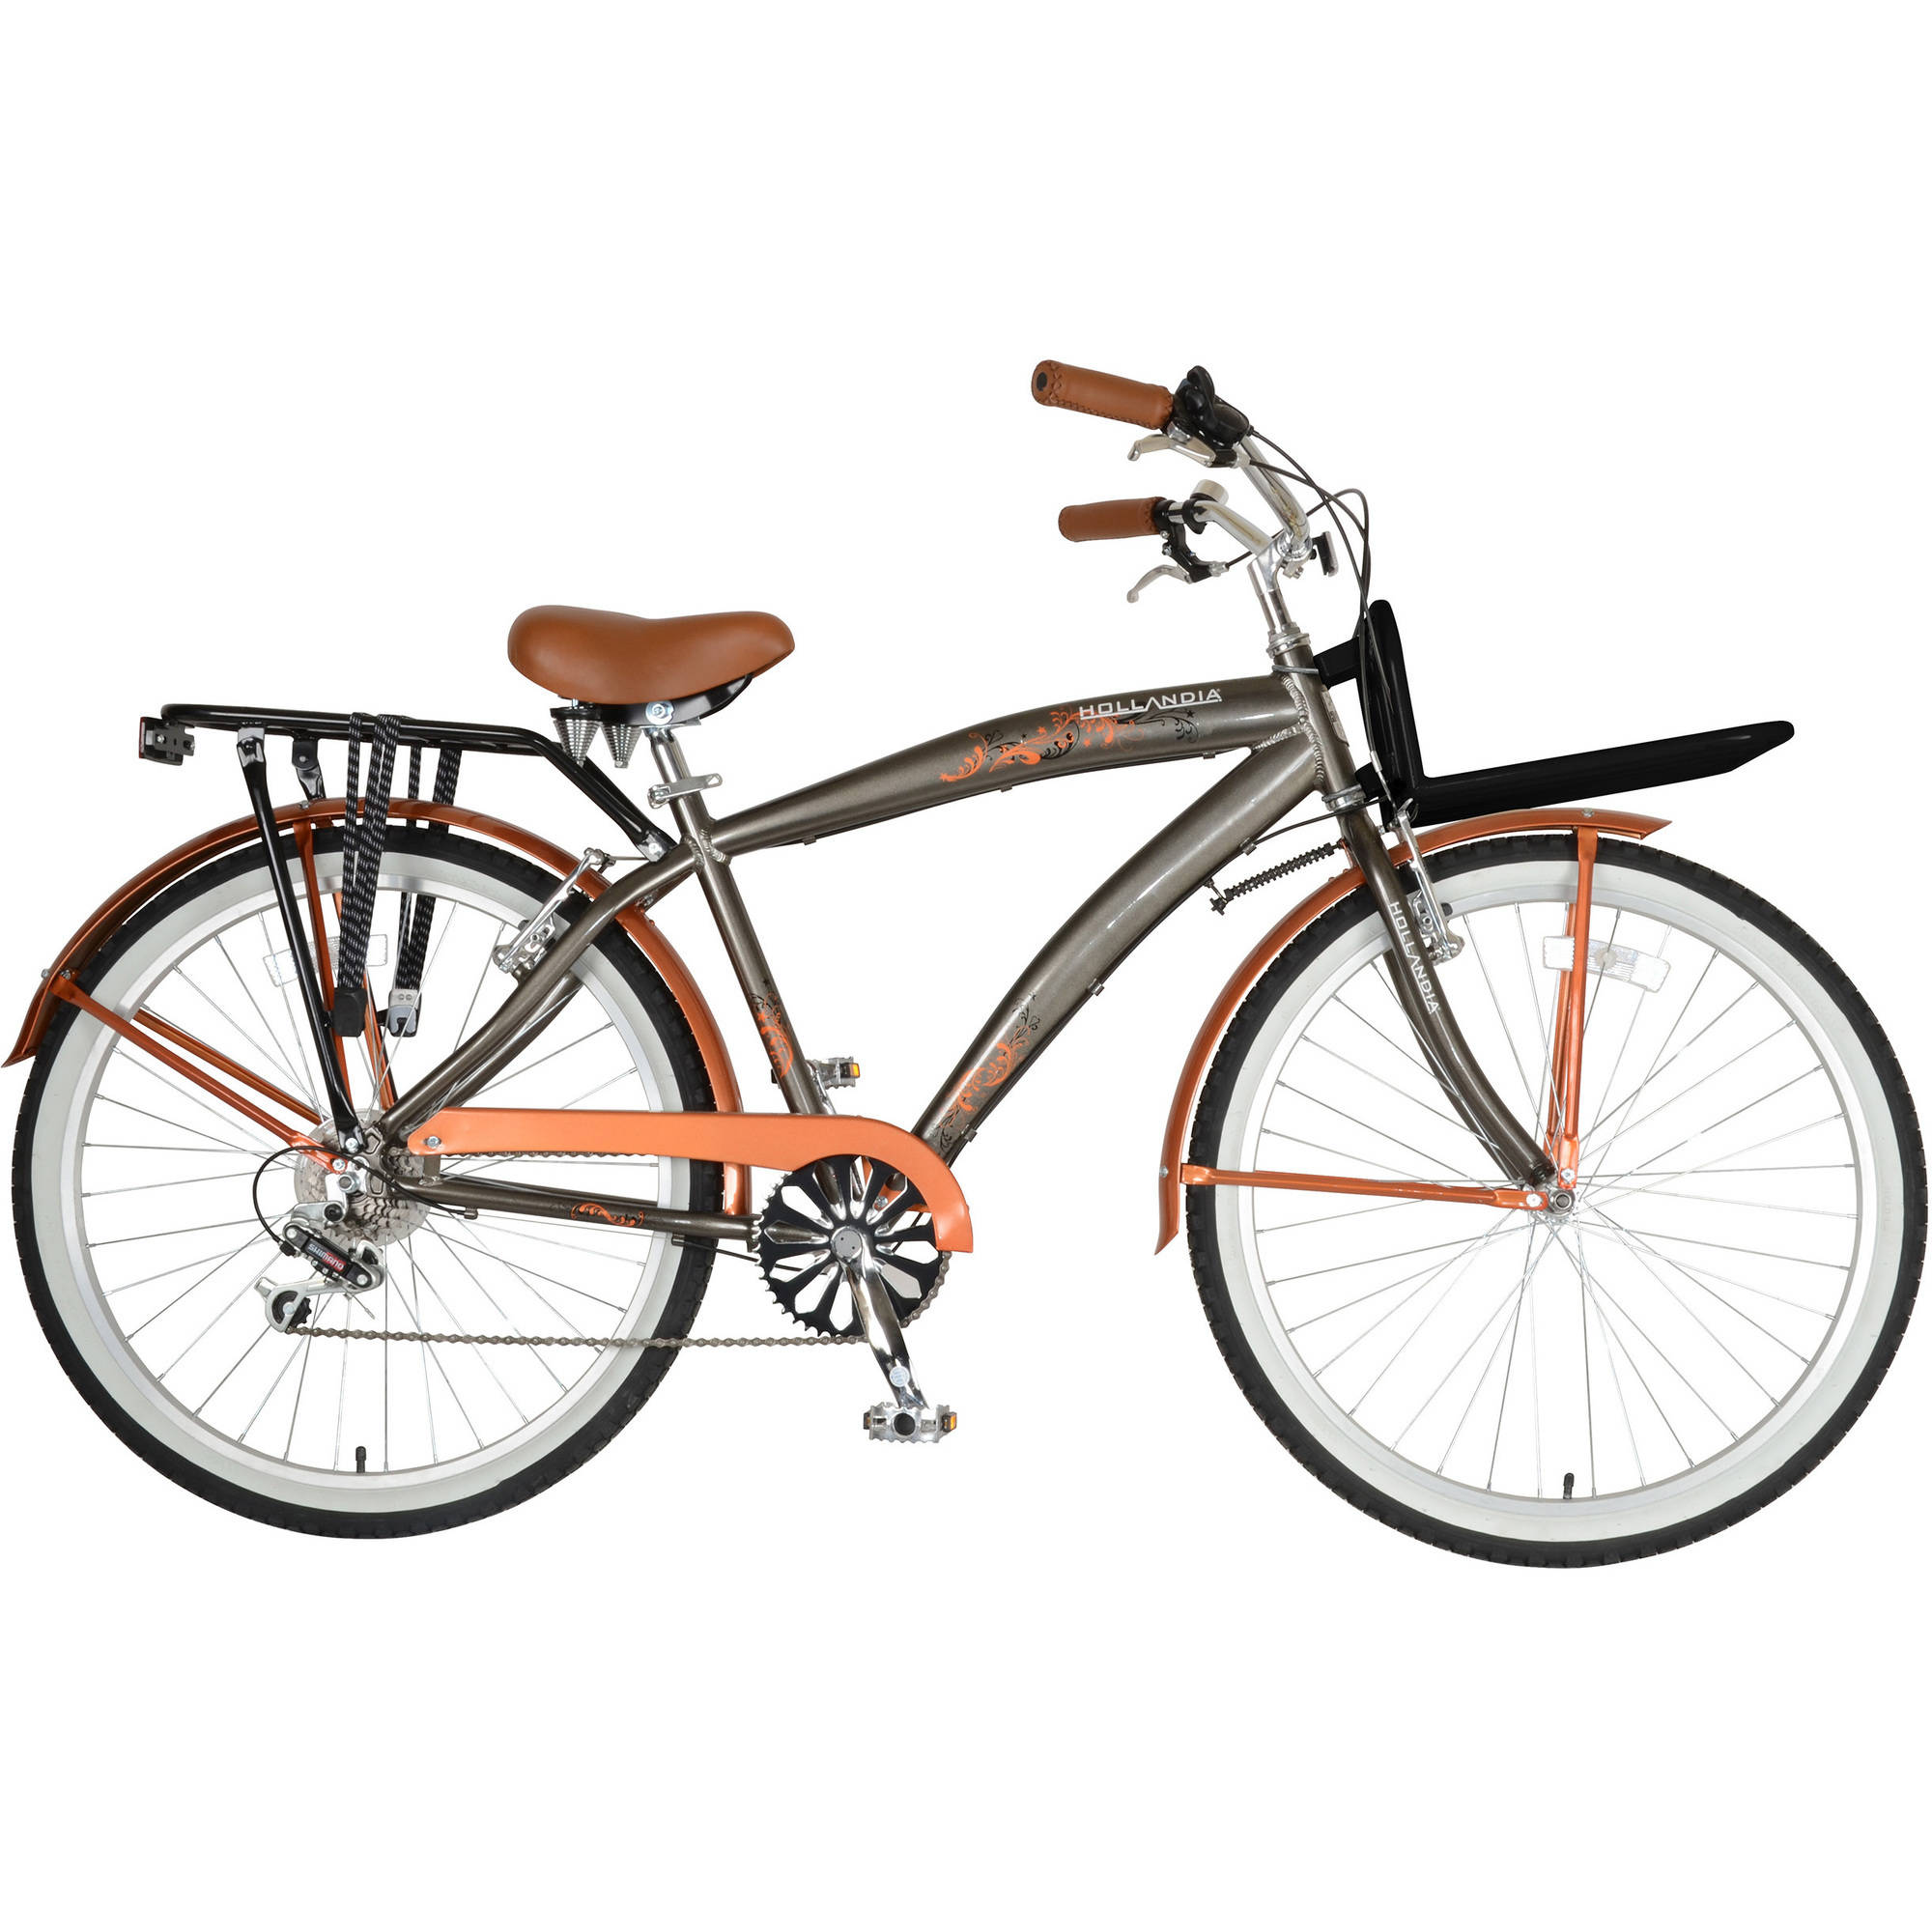 "26"" Hollandia Holiday M1 Men's Cruiser Bike"